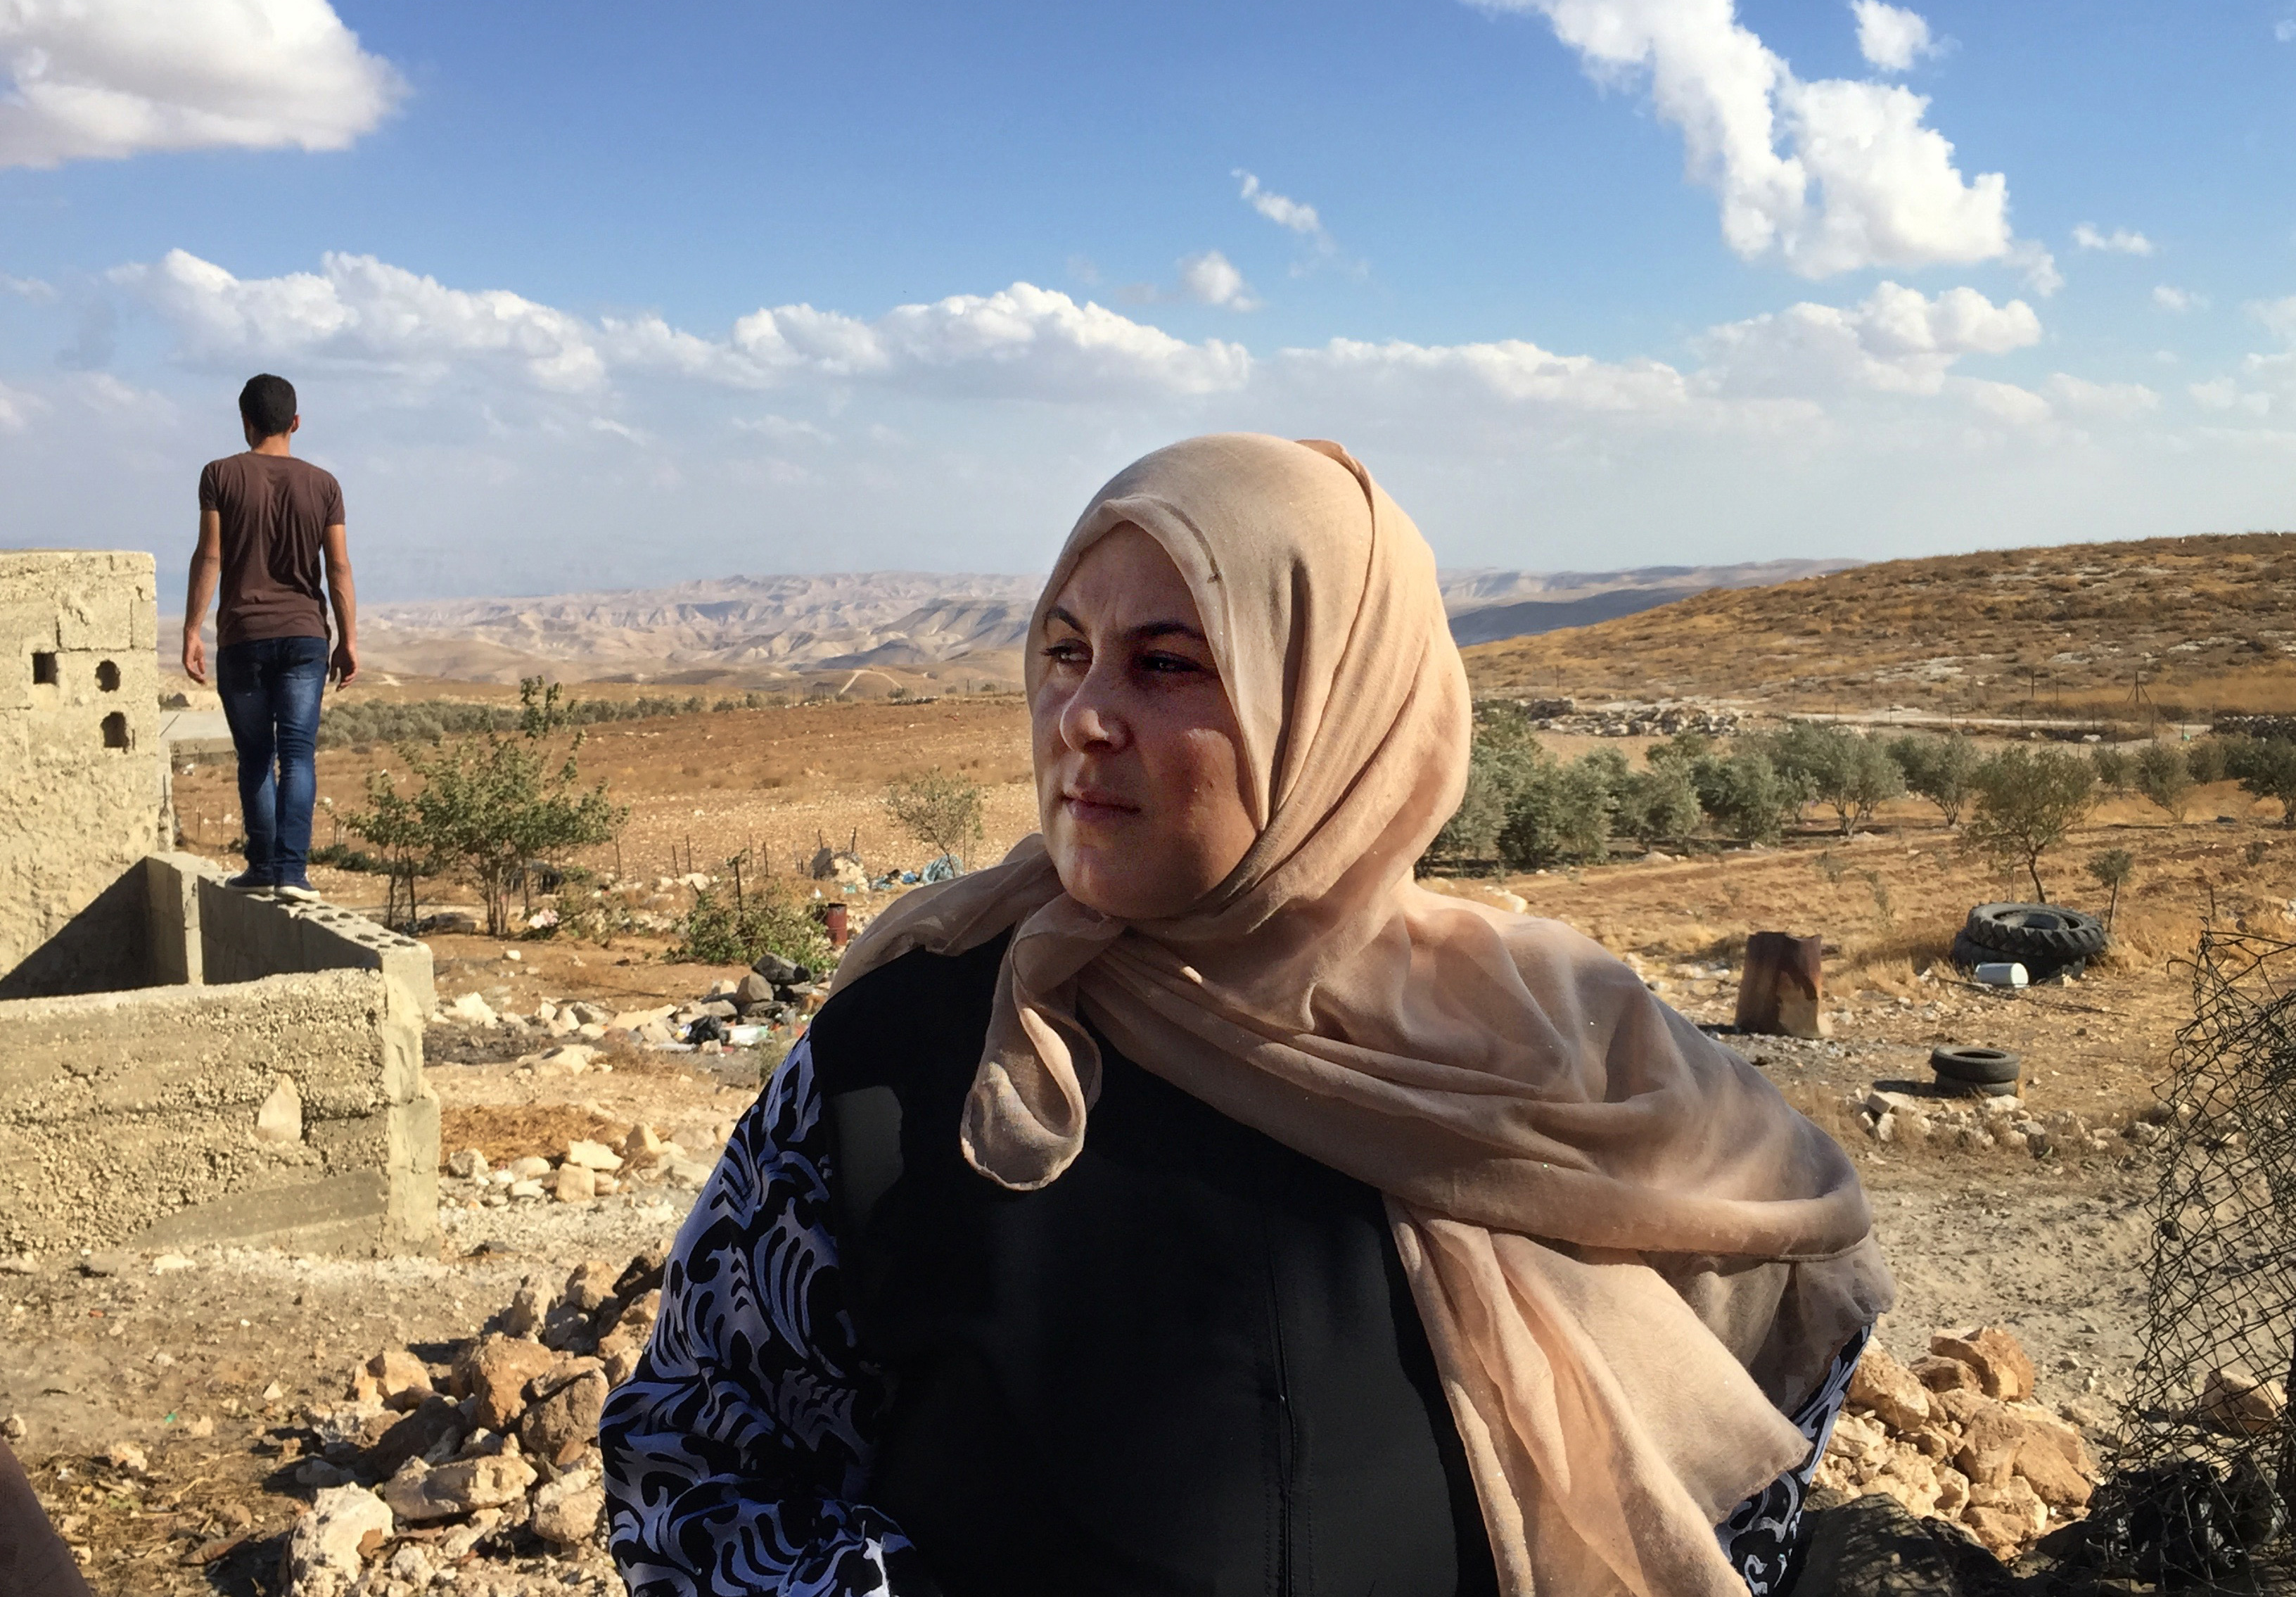 Fadia al-Wahsh, shown on September 23, 2016, is the leader of a village women's committee that is trying to get electricity for their community in Jubbet Adh Dhib, West Bank. MUST CREDIT: Photo by Anne-Marie O'Connor for The Washington Post